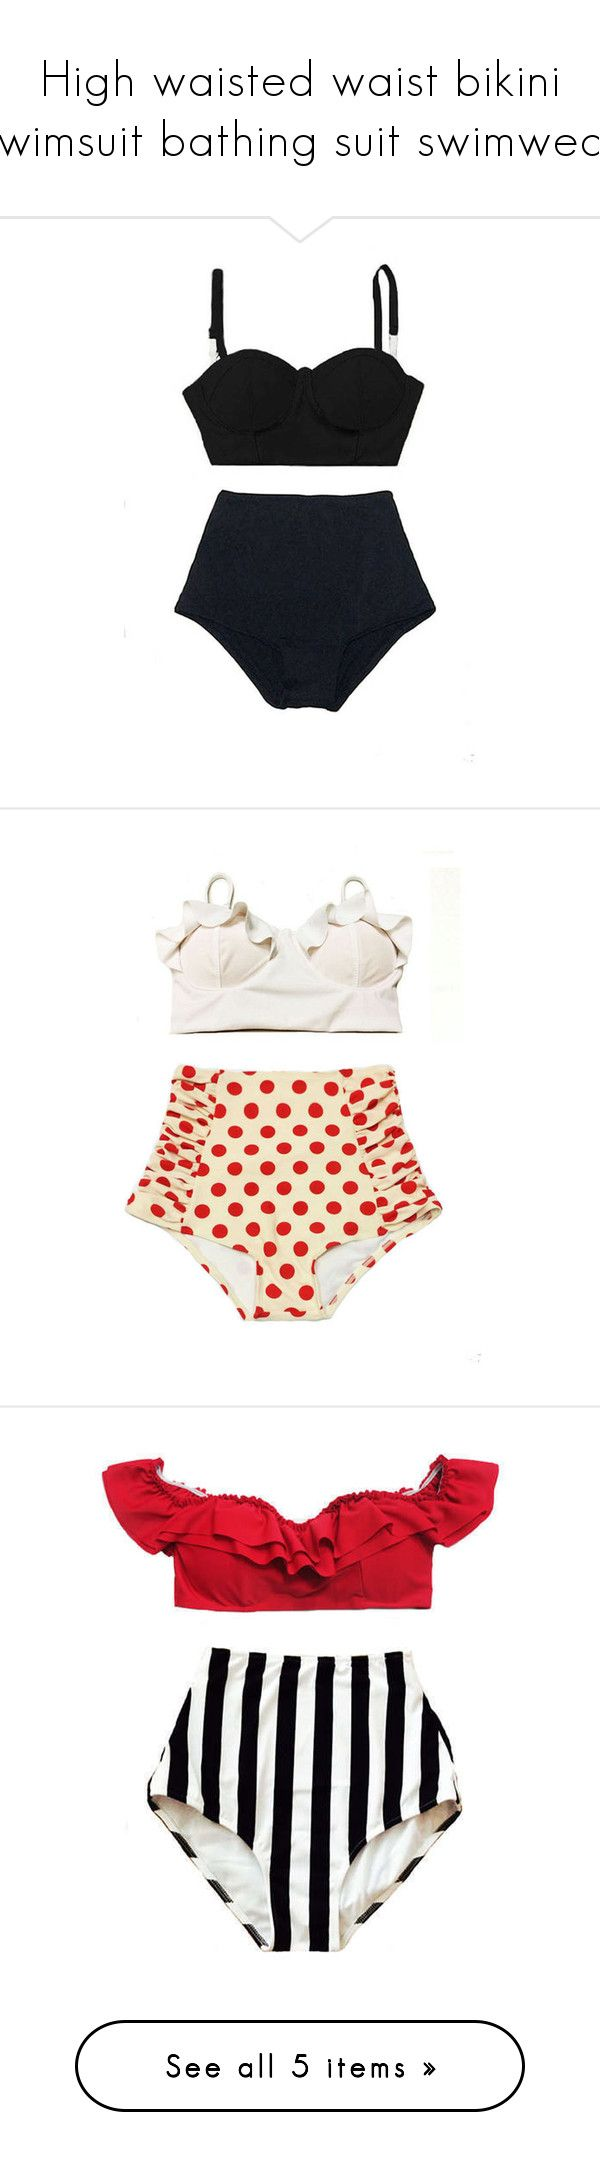 """High waisted waist bikini swimsuit bathing suit swimwear"" by venderstore on Polyvore featuring swimwear, bikinis, swimsuits, bathing suit, light pink, women's clothing, high waisted bikini, high-waisted bathing suits, vintage high waisted bikini and white high waisted swimsuit"